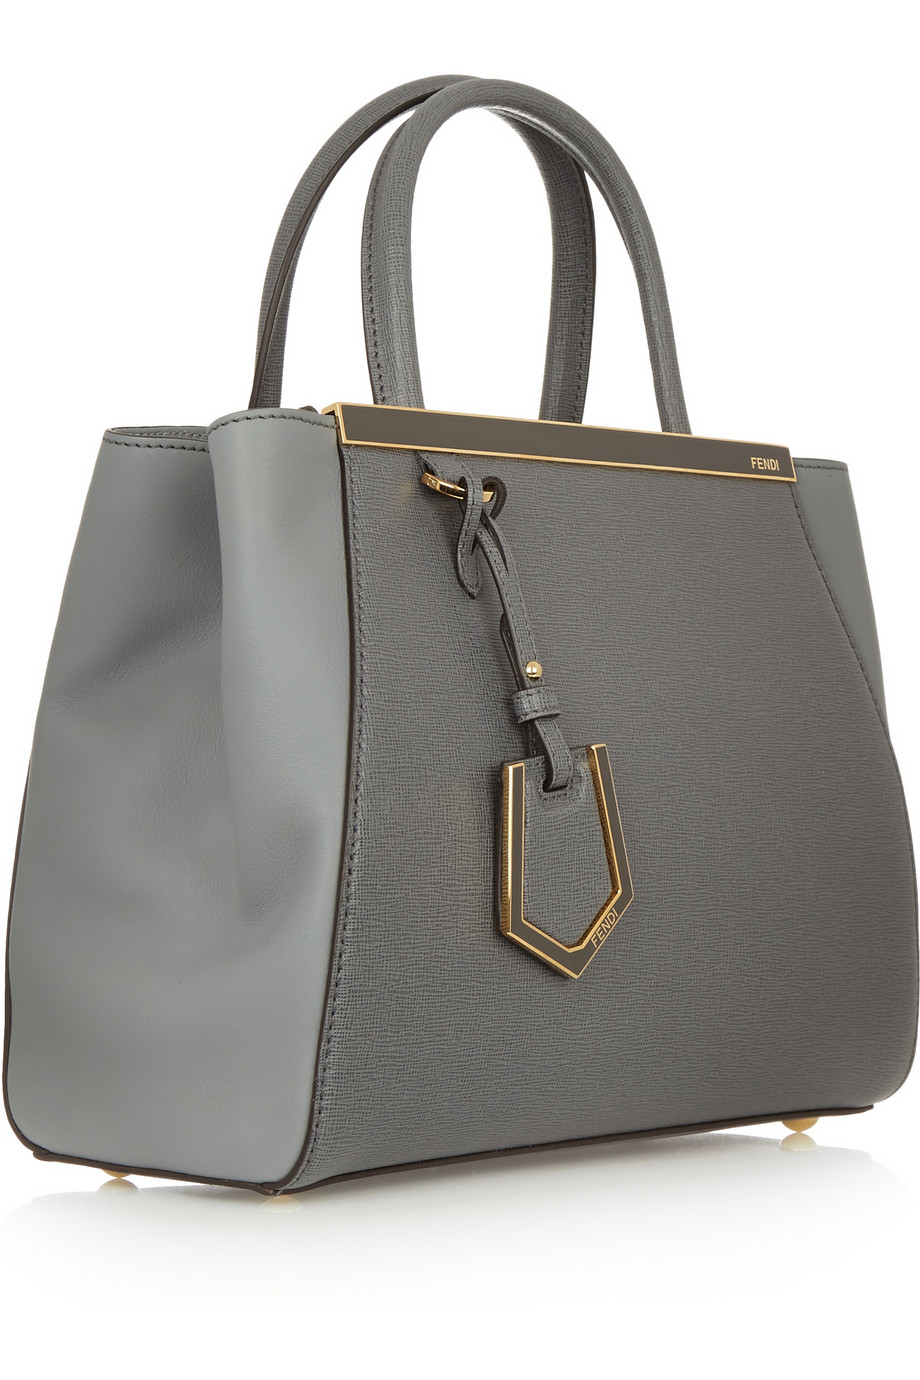 15510b3a9128 Fendi 2jours Small Textured-leather Shopper in Gray - Lyst